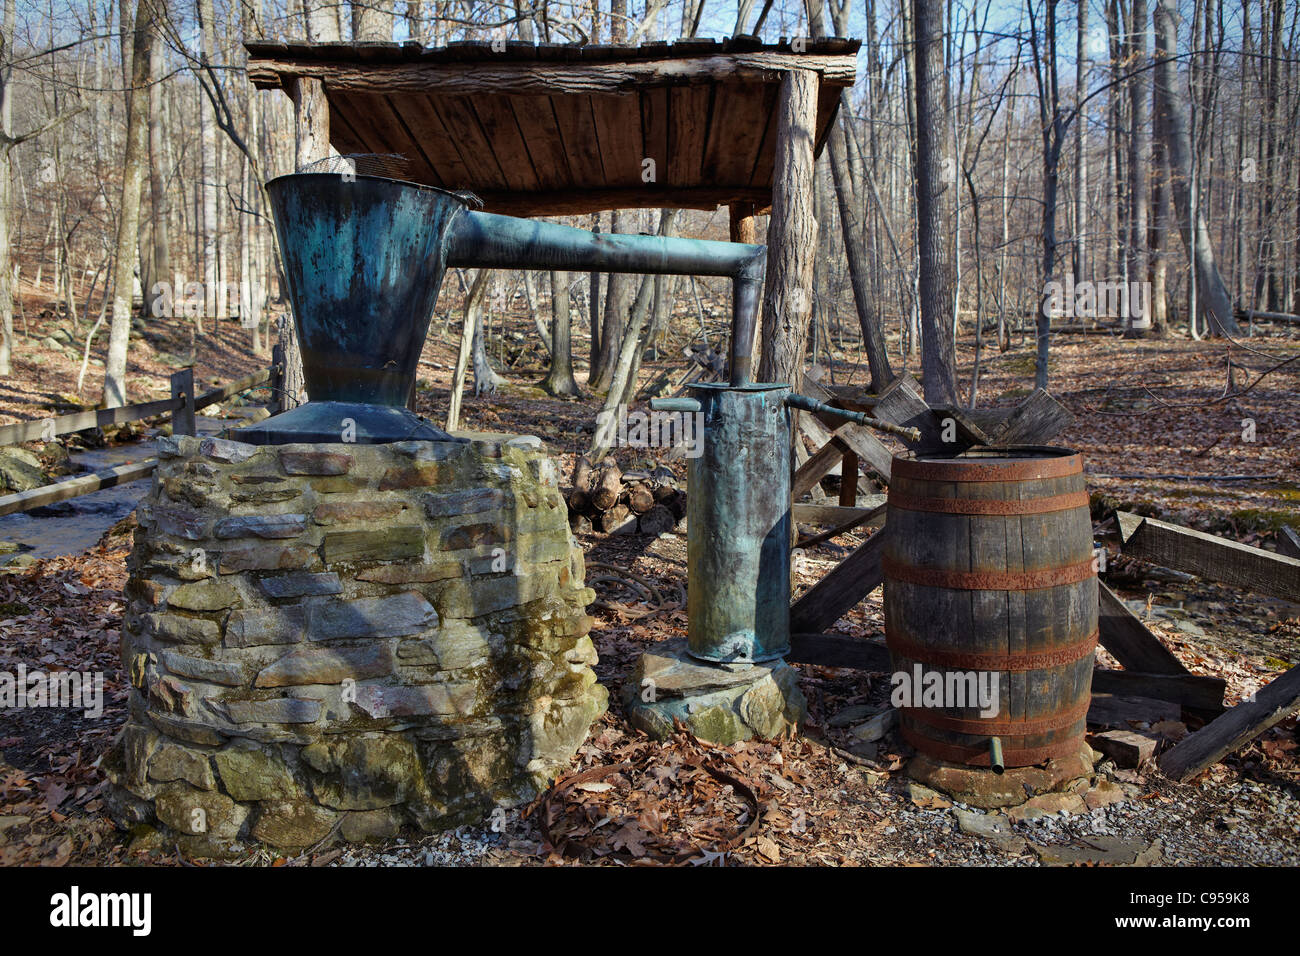 Vintage Prohibition-era copper whiskey still, Blue Blazes moonshine distillery, Catoctin Mountain Park, Thurmont, - Stock Image